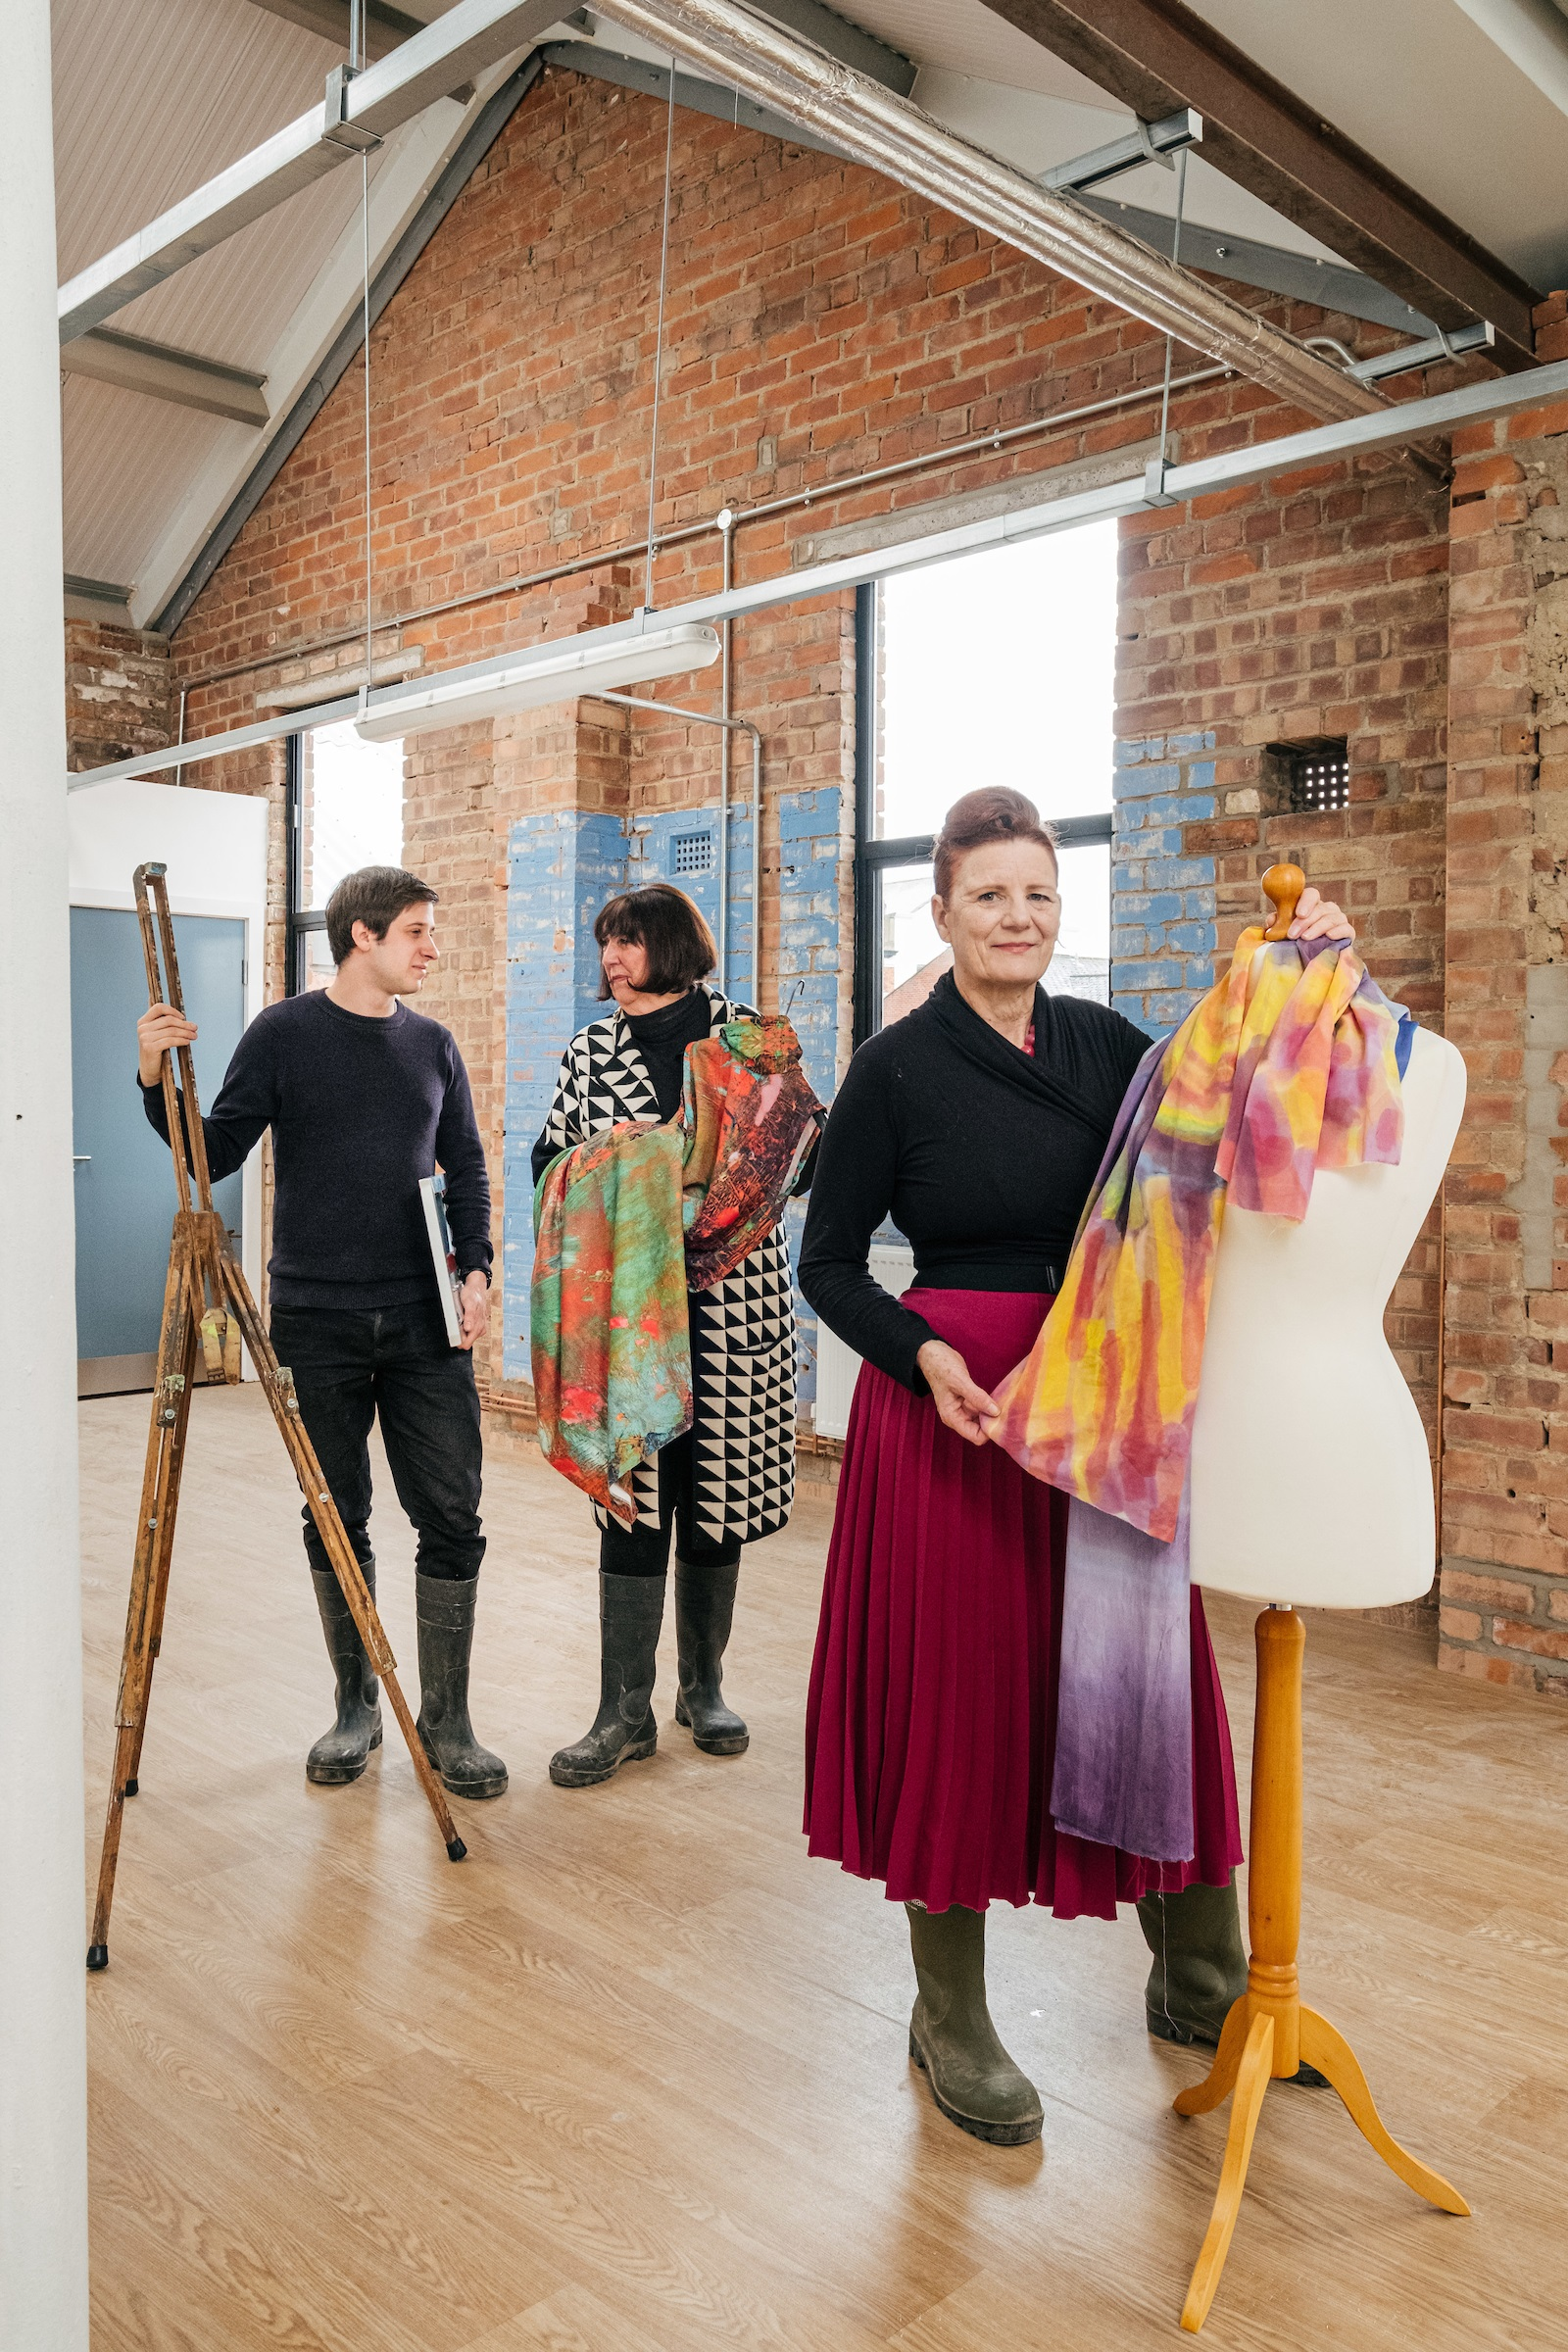 Juice Studios will become home to emerging and established creatives looking to develop their careers in a range of art disciplines, including printmaking, contemporary art, textiles, and fashion design